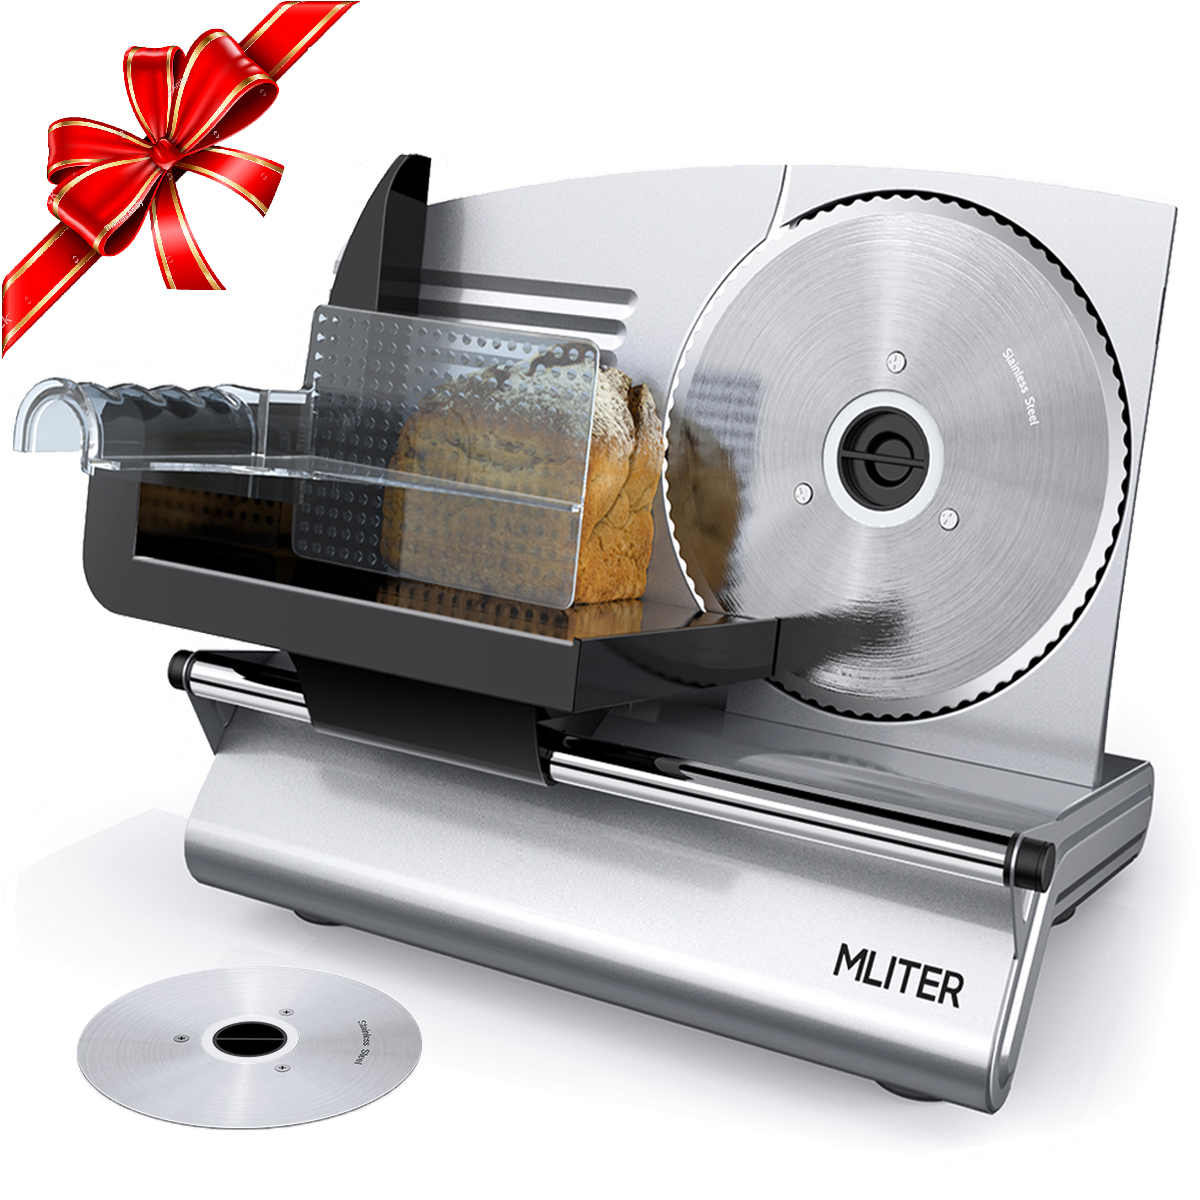 "Food Slicers and Choppers, Mliter Electric Food Slicer 150 Watt for Home Use with 7.5"" Stainless Steel Blade, Thickness Adjustable For Bread Cheese Vegetables Fruits Meats"